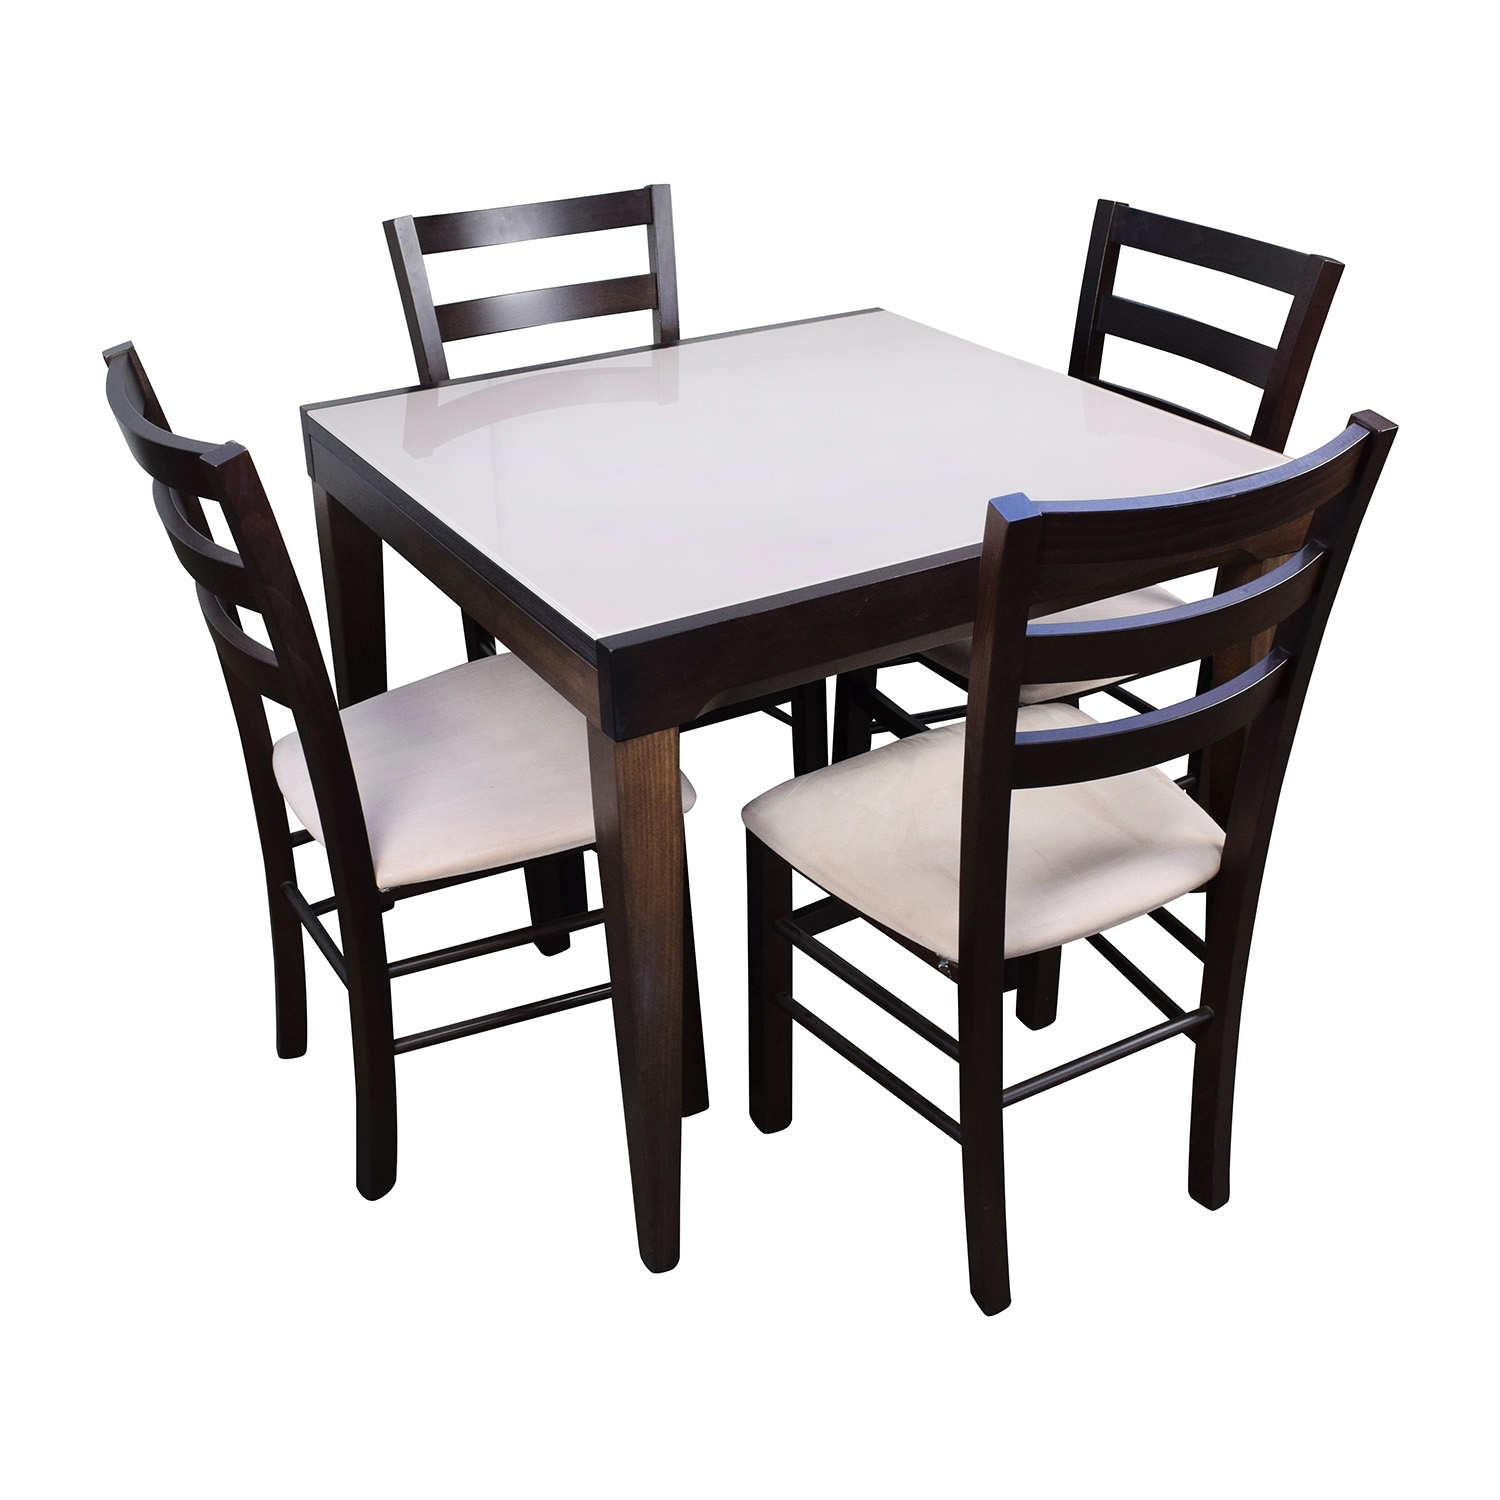 82% Off – Macy's Macy's Cafe Latte Five Piece Extendable Dining Set Inside Most Popular Macie 5 Piece Round Dining Sets (Photo 12 of 20)